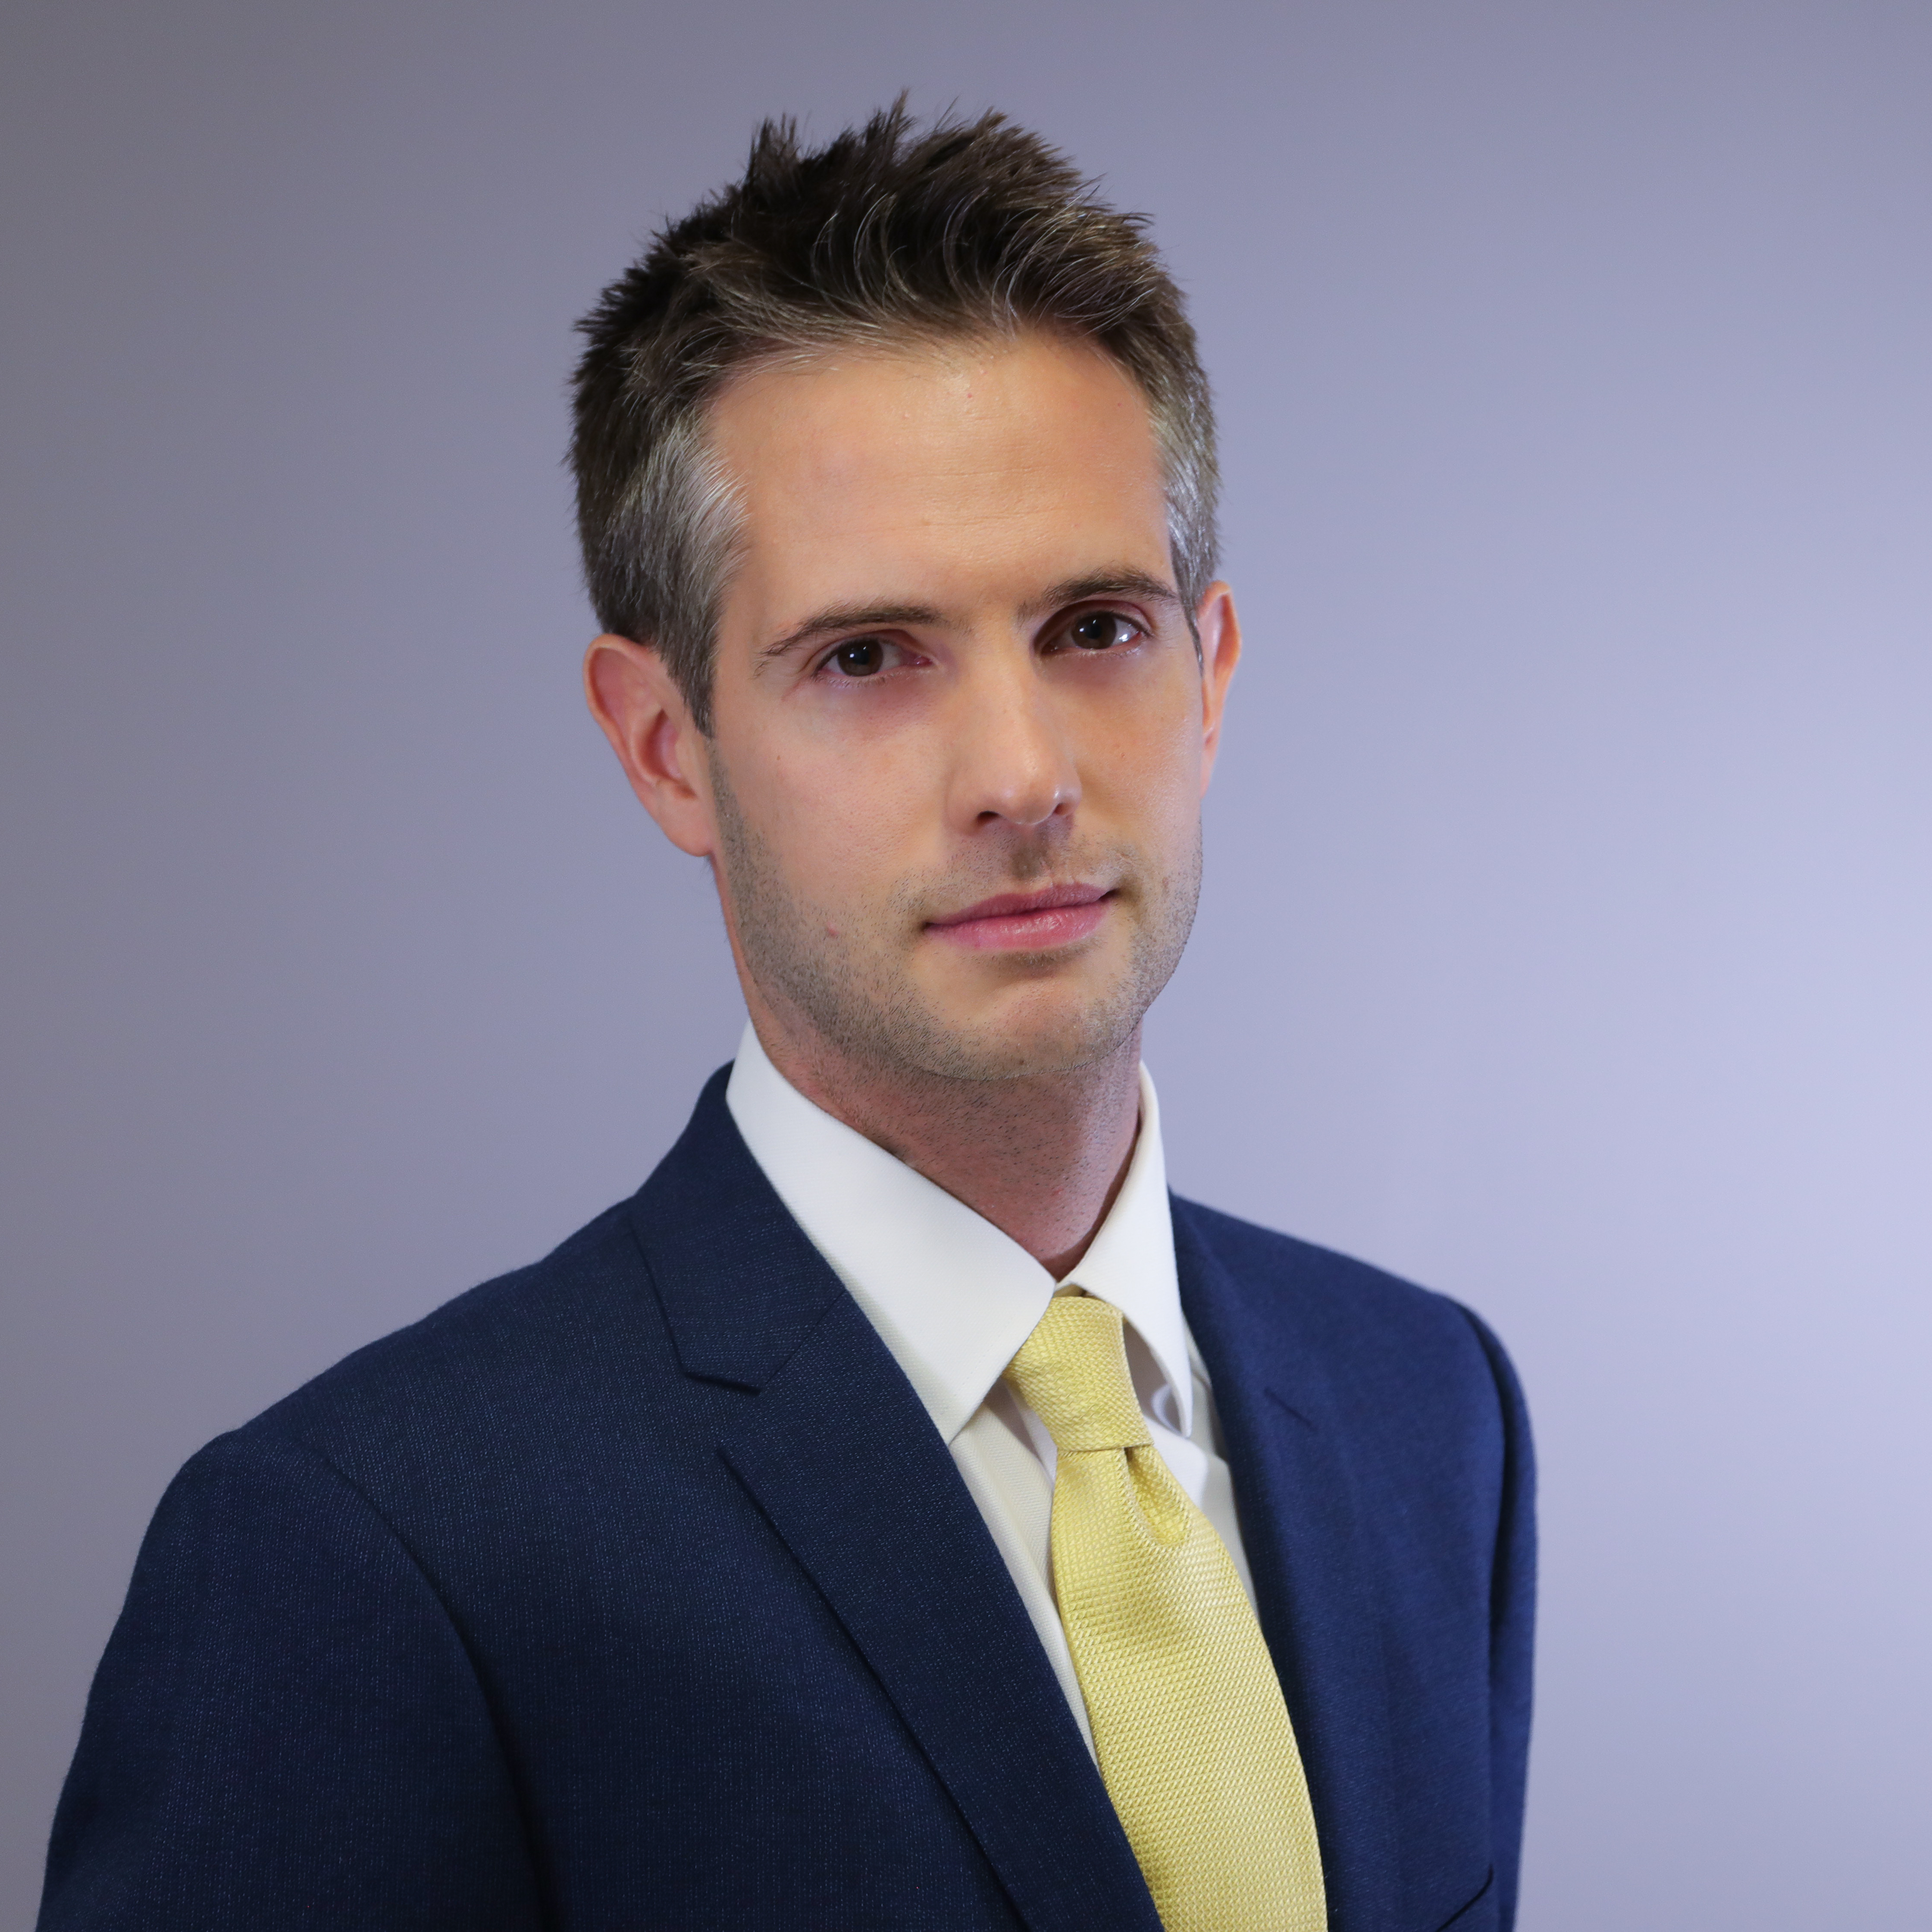 Portrait studio photograph of Dr Ludovic Highman wearing a black suit, white shirt and yellow tie standing in front of a purple background looking towards the camera.